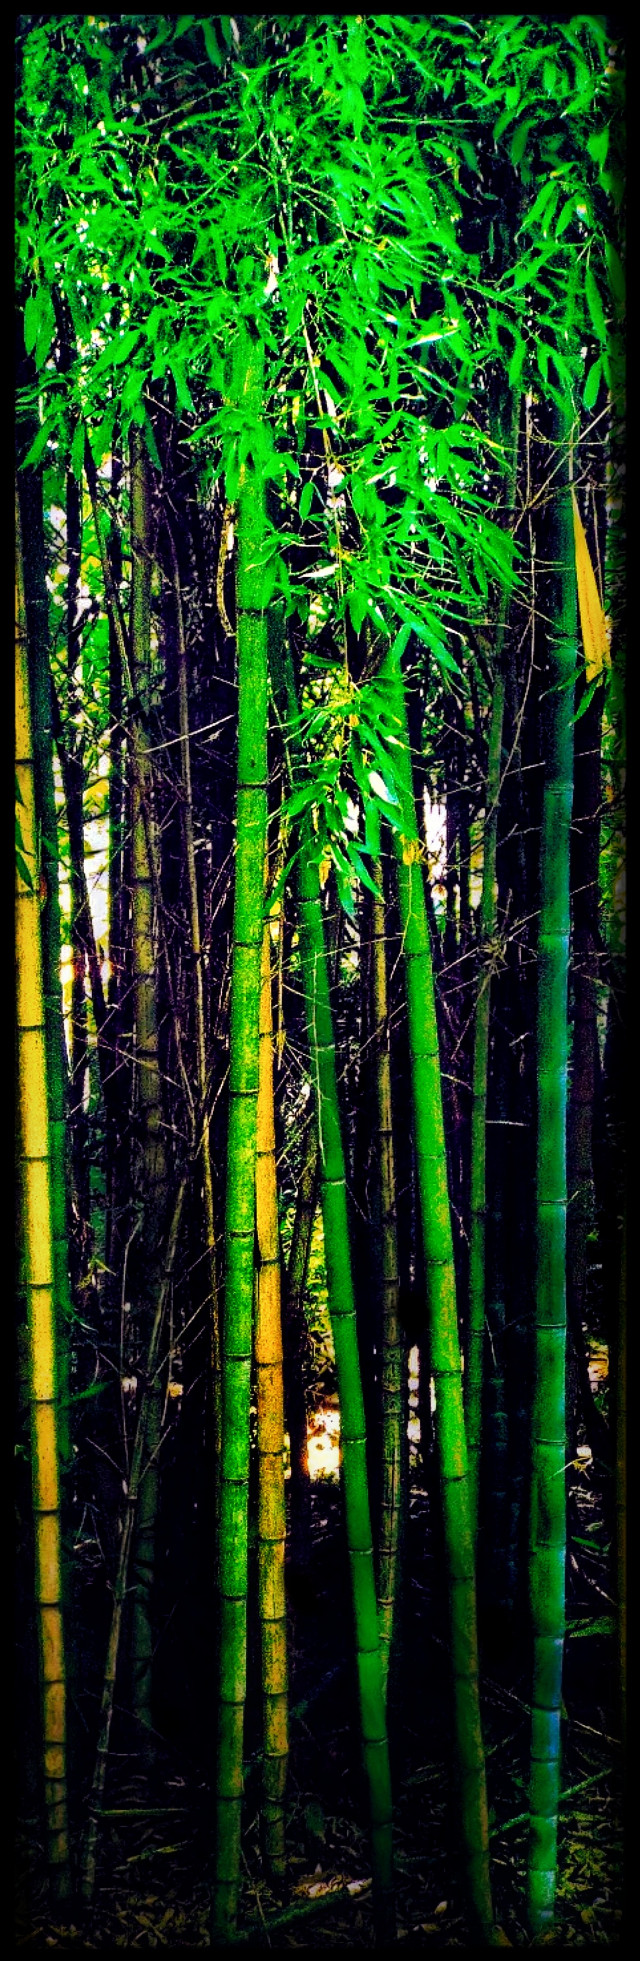 CLICK TO OPEN FULL IMAGE. #bamboo #longorientation #green